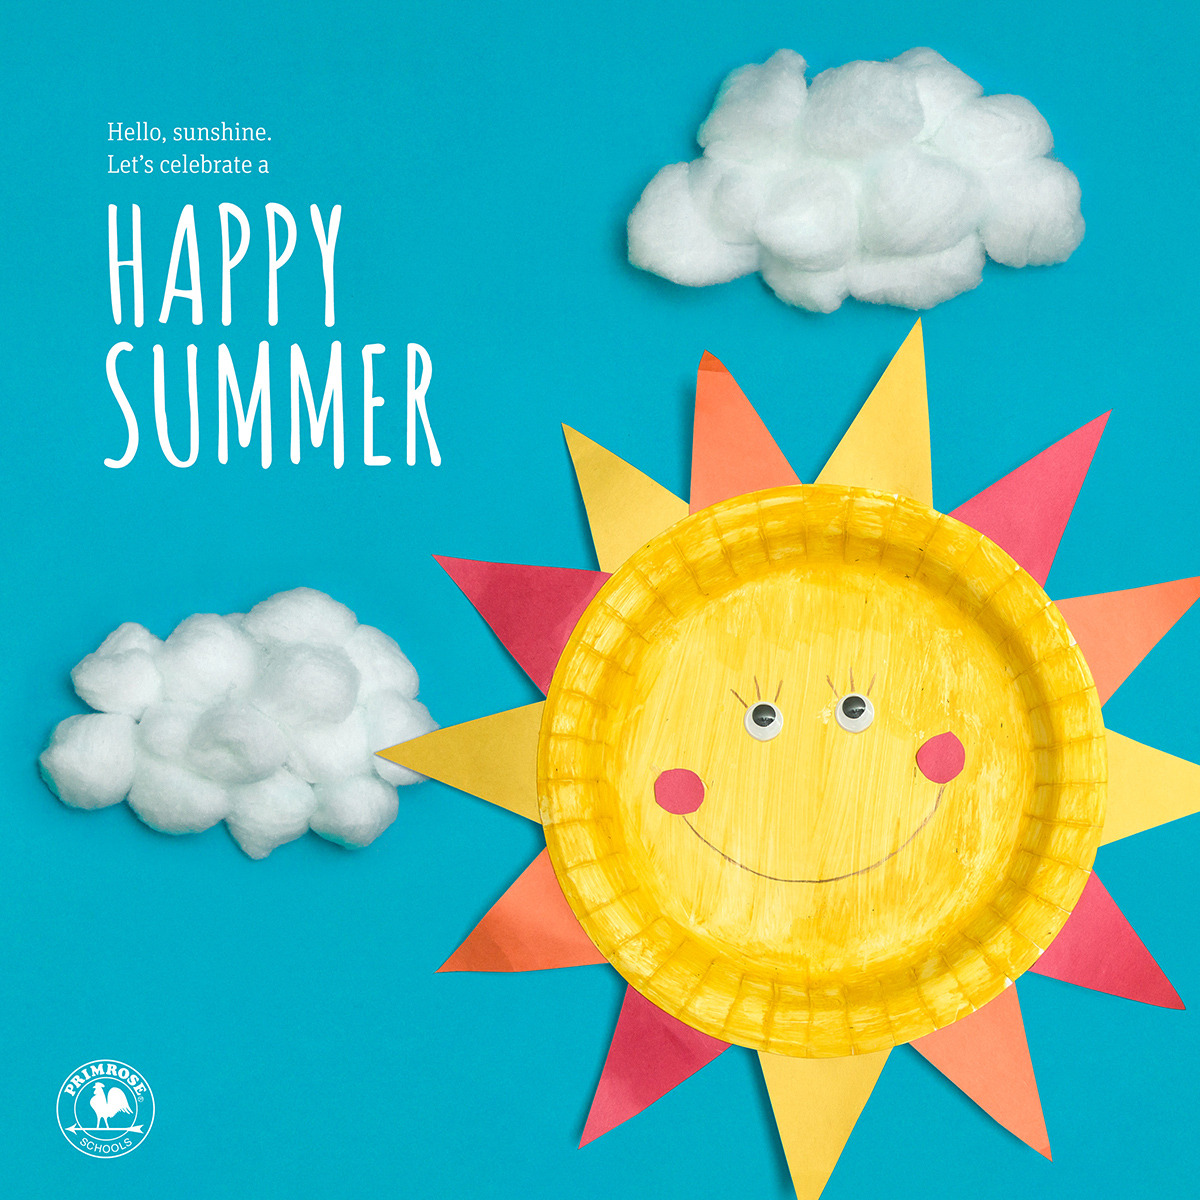 """A smiling sun made out of a paper plate floats in a blue sky with cotton ball clouds and the words """"Happy Summer"""" next to it."""